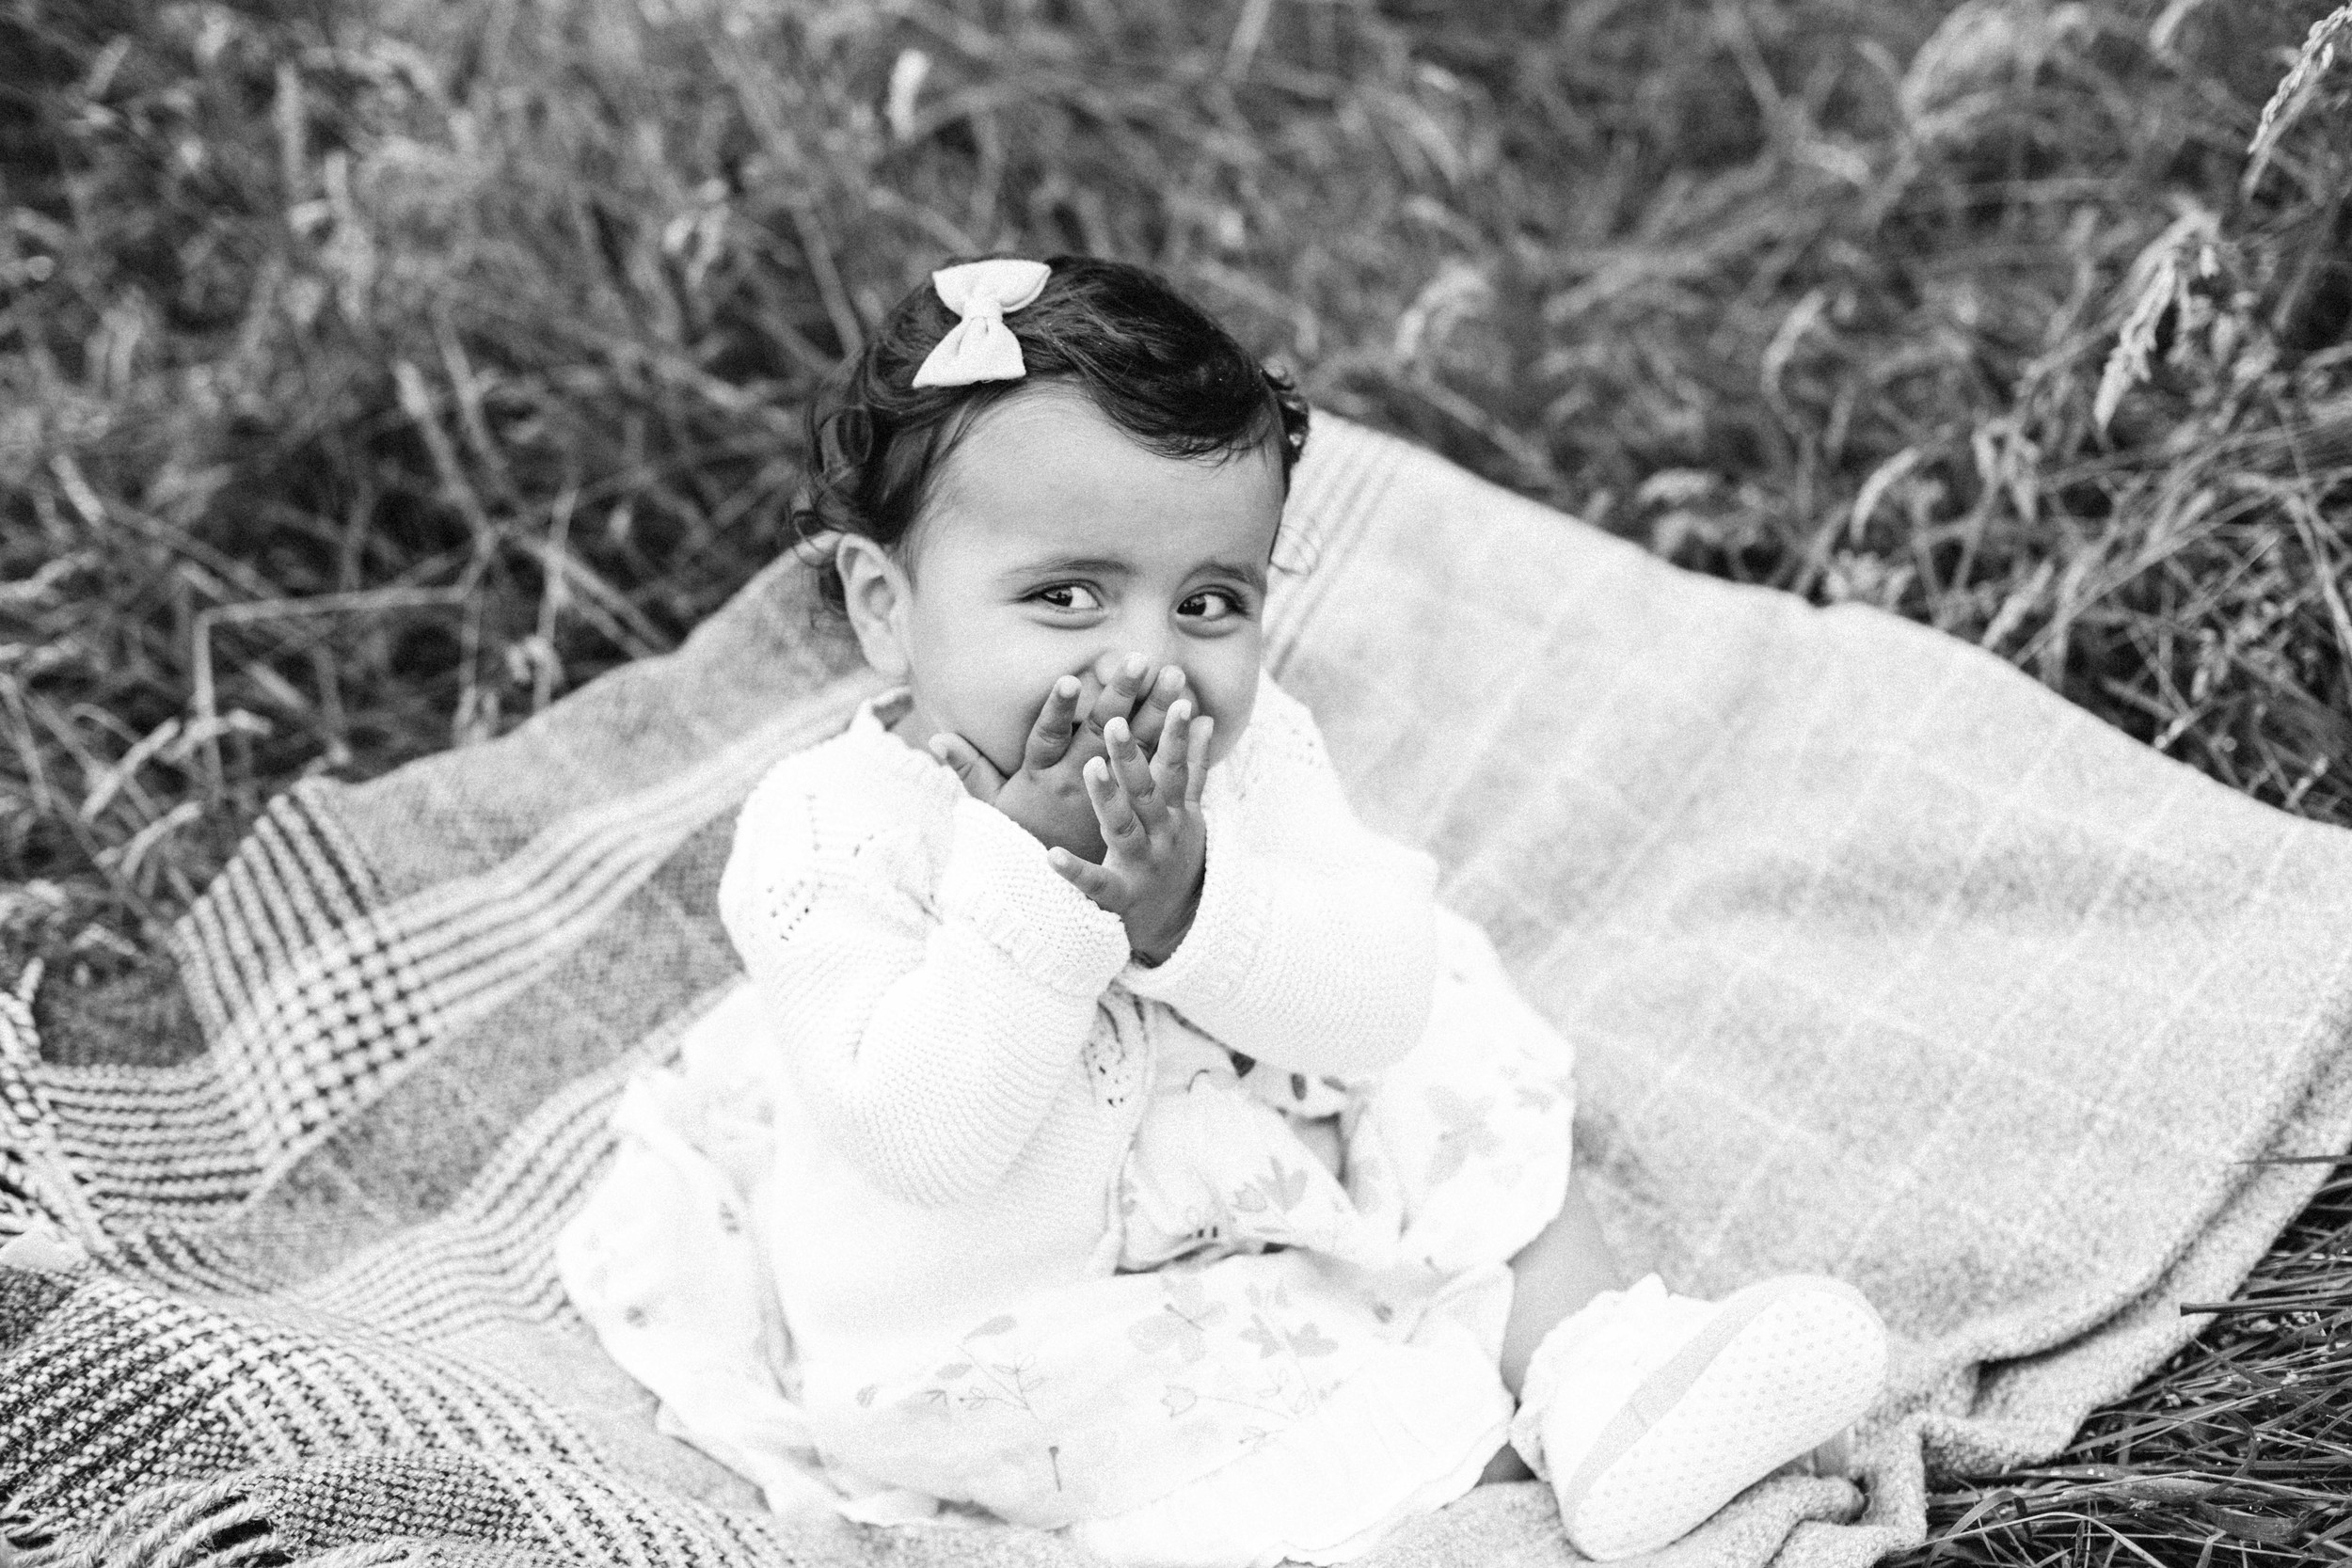 LittleKin_Photography_Family_Photoshoot_Richmond_hollyandjay-111.jpg